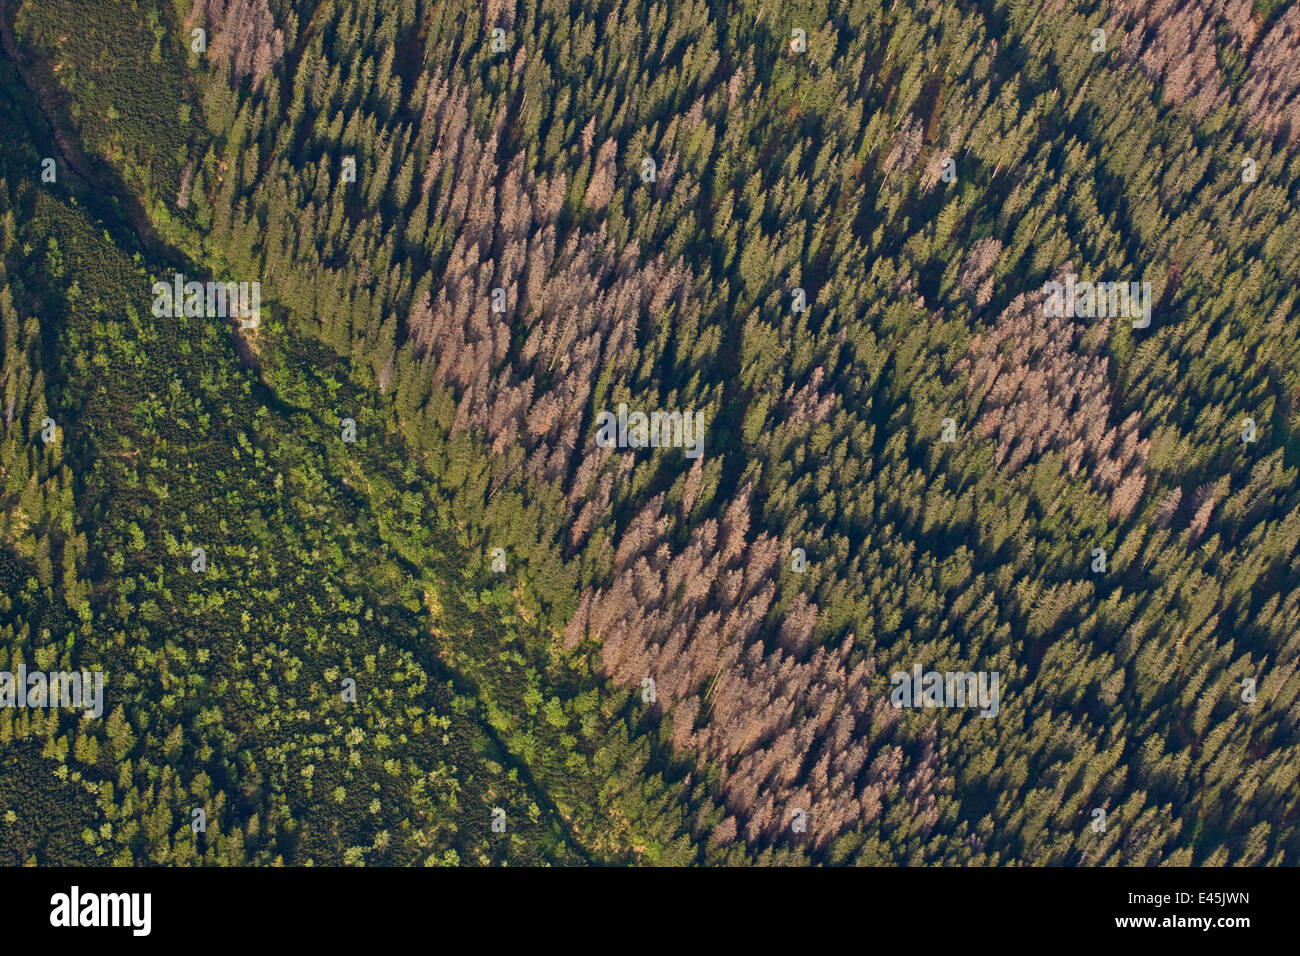 Aerial view of border between spruce forest and Dwarf mountain pine (Pinus mugo) zones showing several trees killed - Stock Image